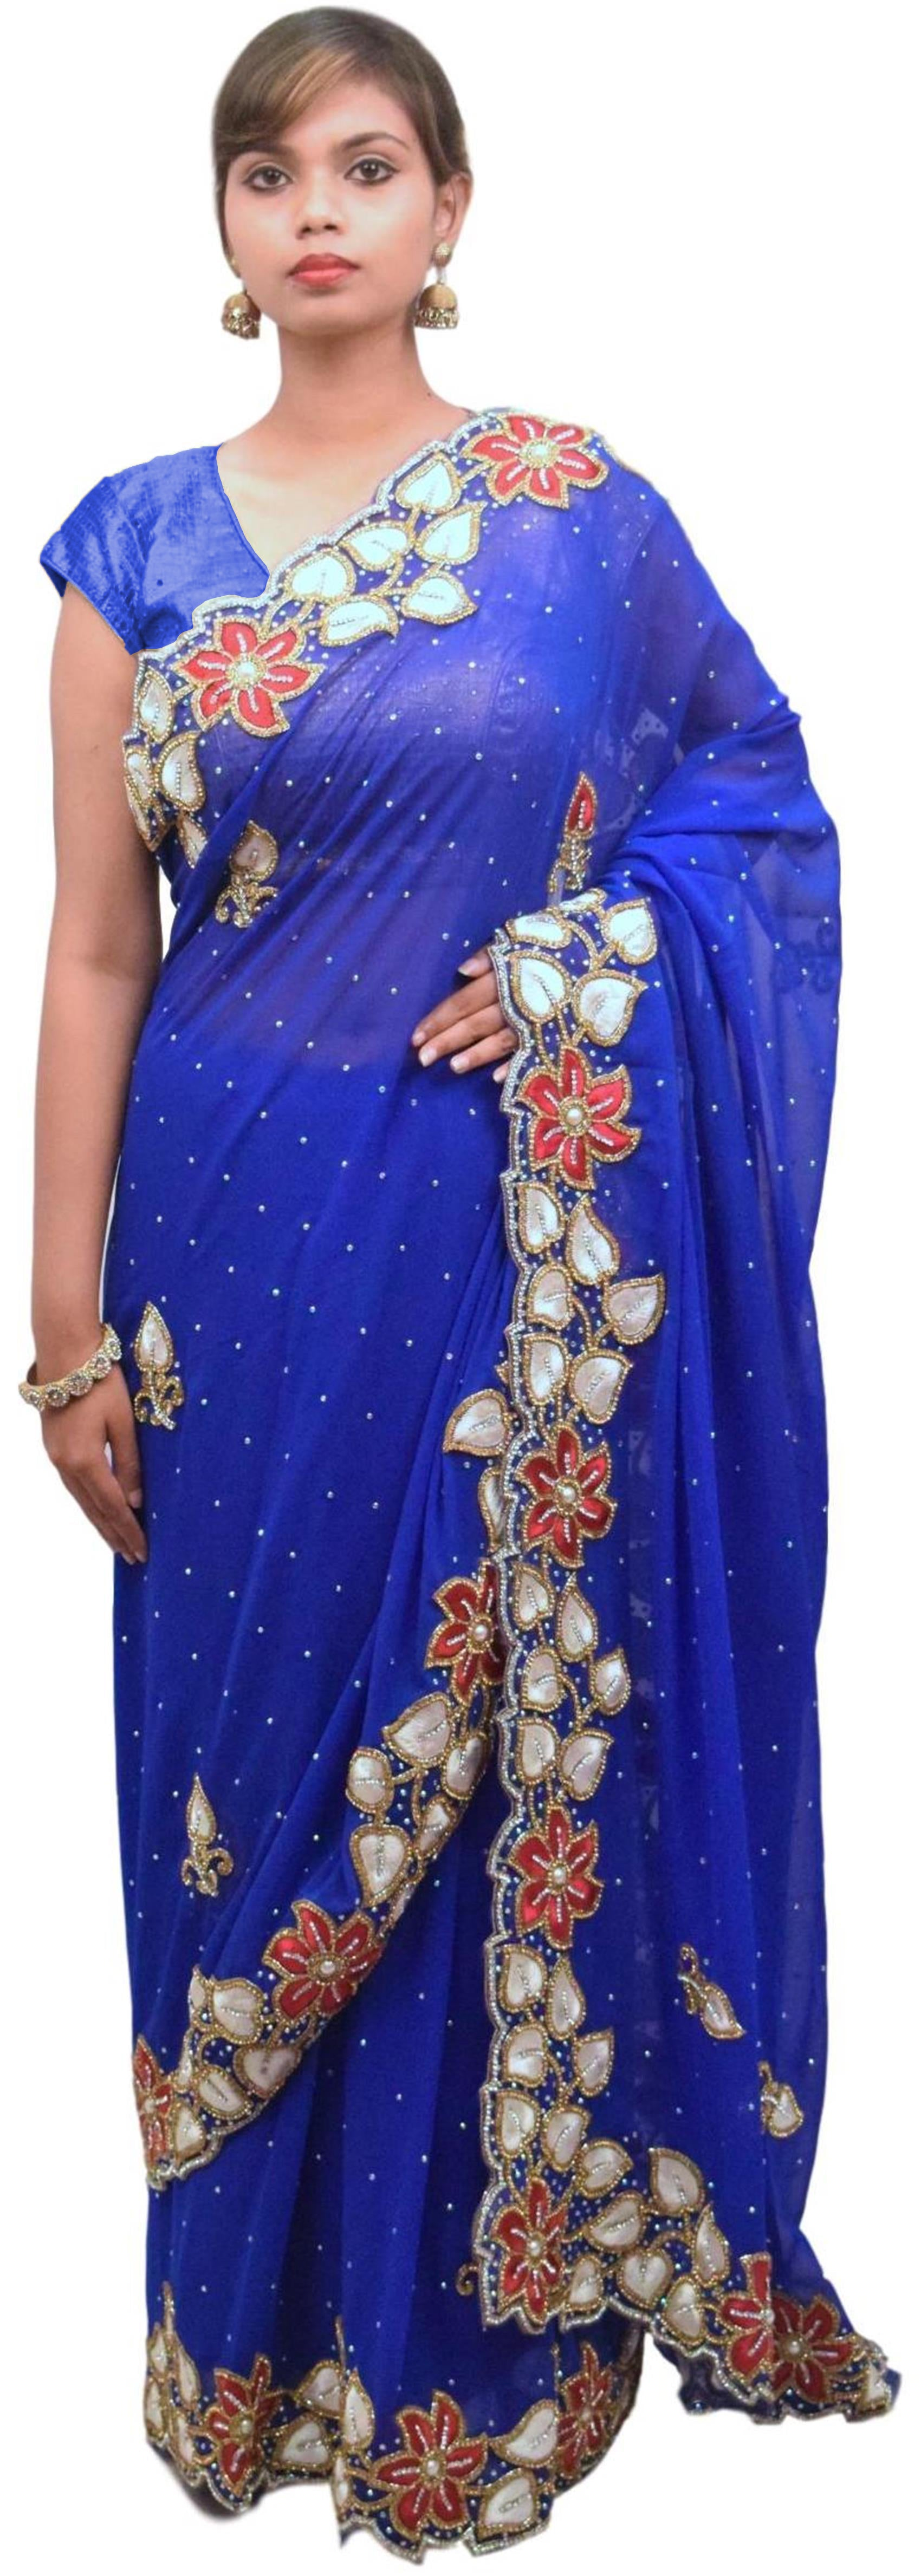 Blue Designer Wedding Partywear Georgette Hand Embroidery Cutdana Stone Thread Work Kolkata Heavy Cutwork Border Saree Sari E180